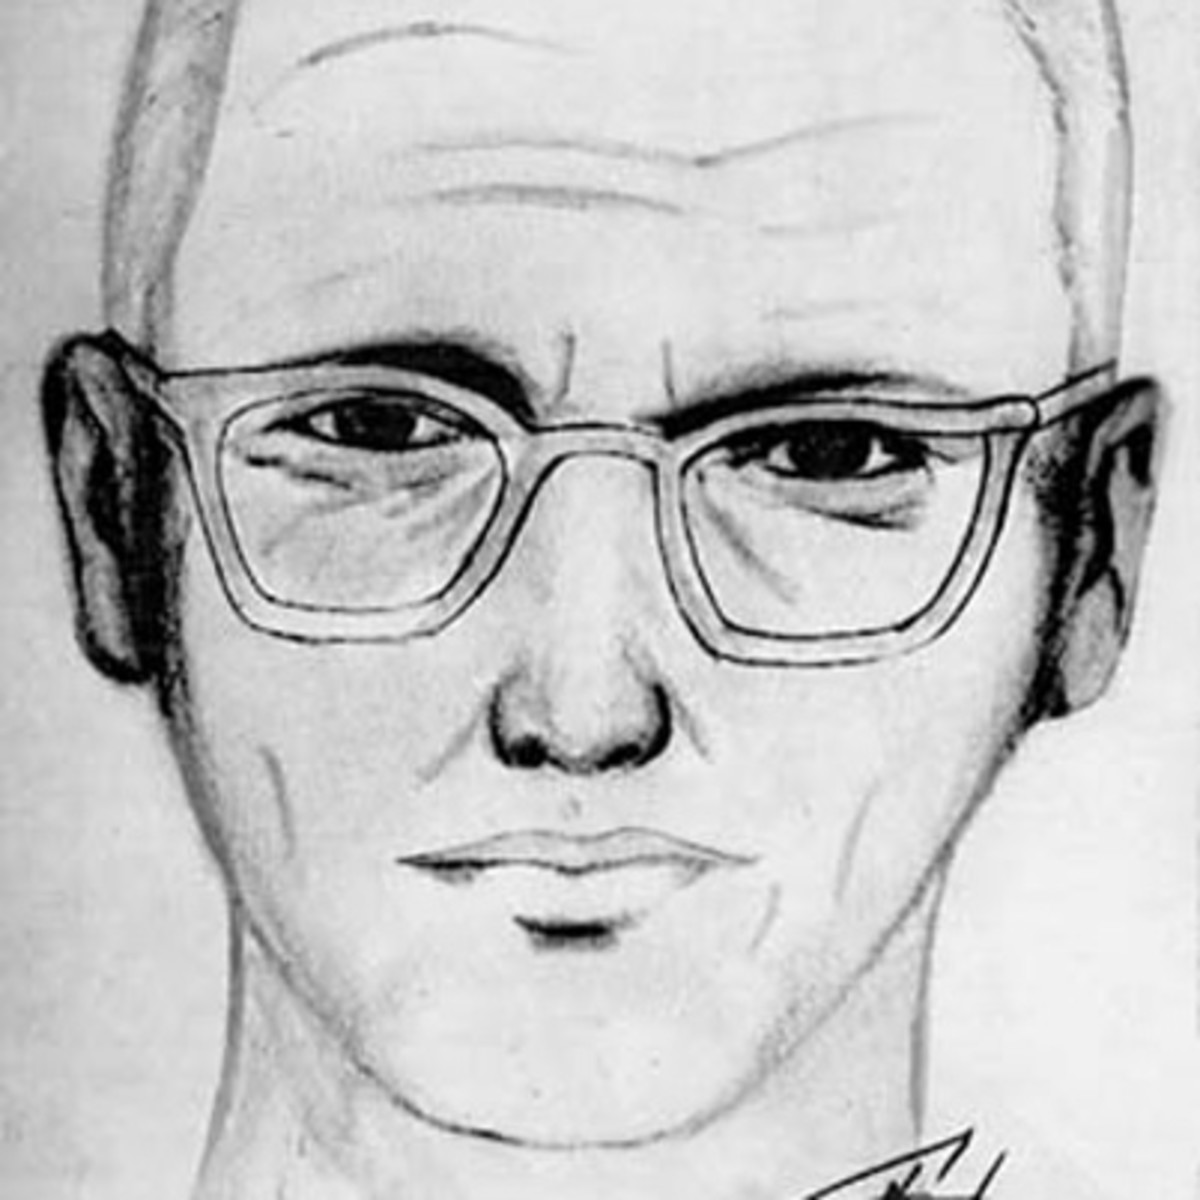 zodiac killer - photo #3